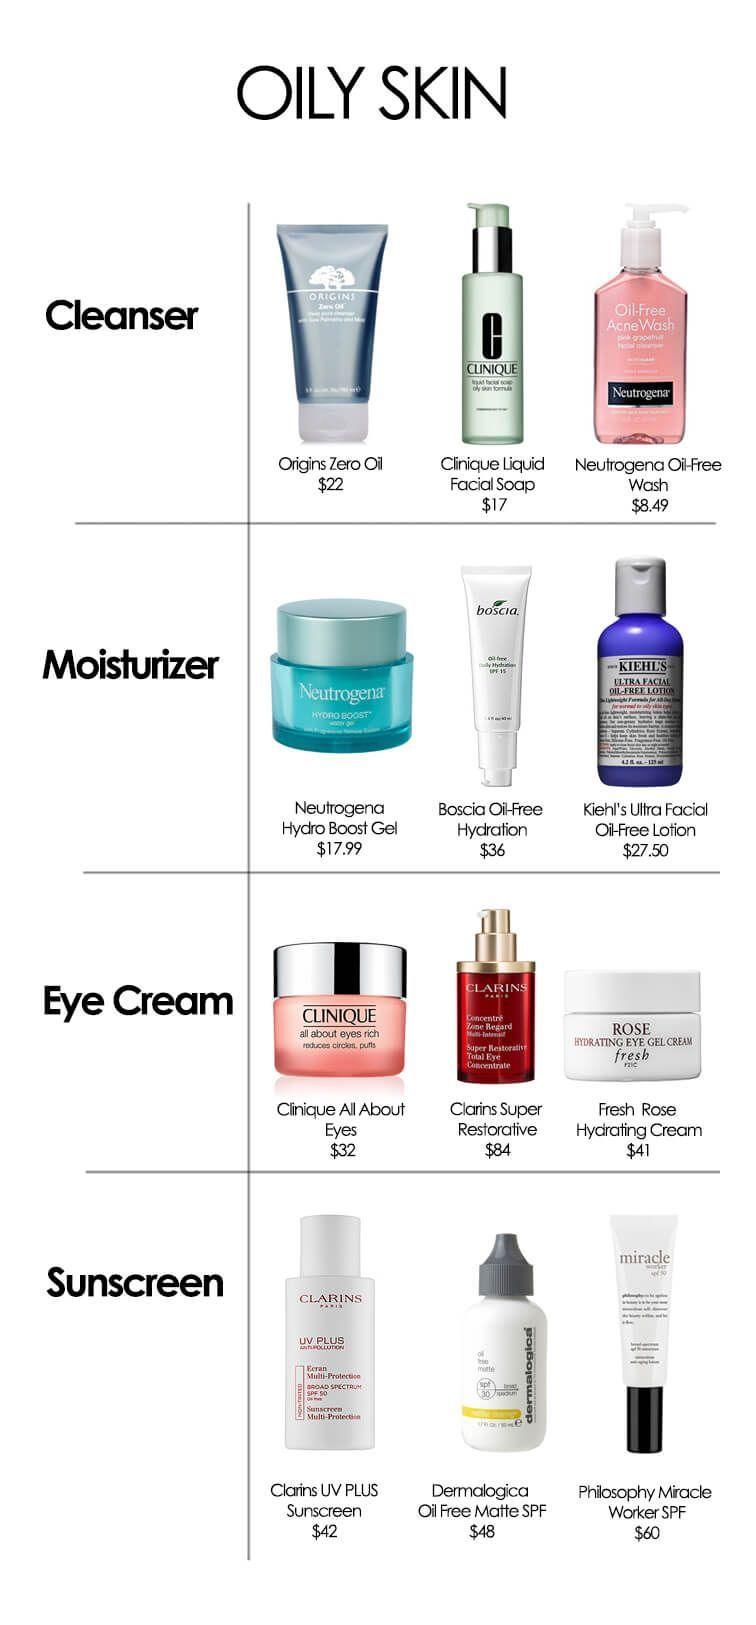 It So Important To Have A Solid Skincare Routine So Today I Wanted To Share A Guide Of Skincare Recomm Skin Cleanser Products Cosmetic Skin Care Oily Skin Care